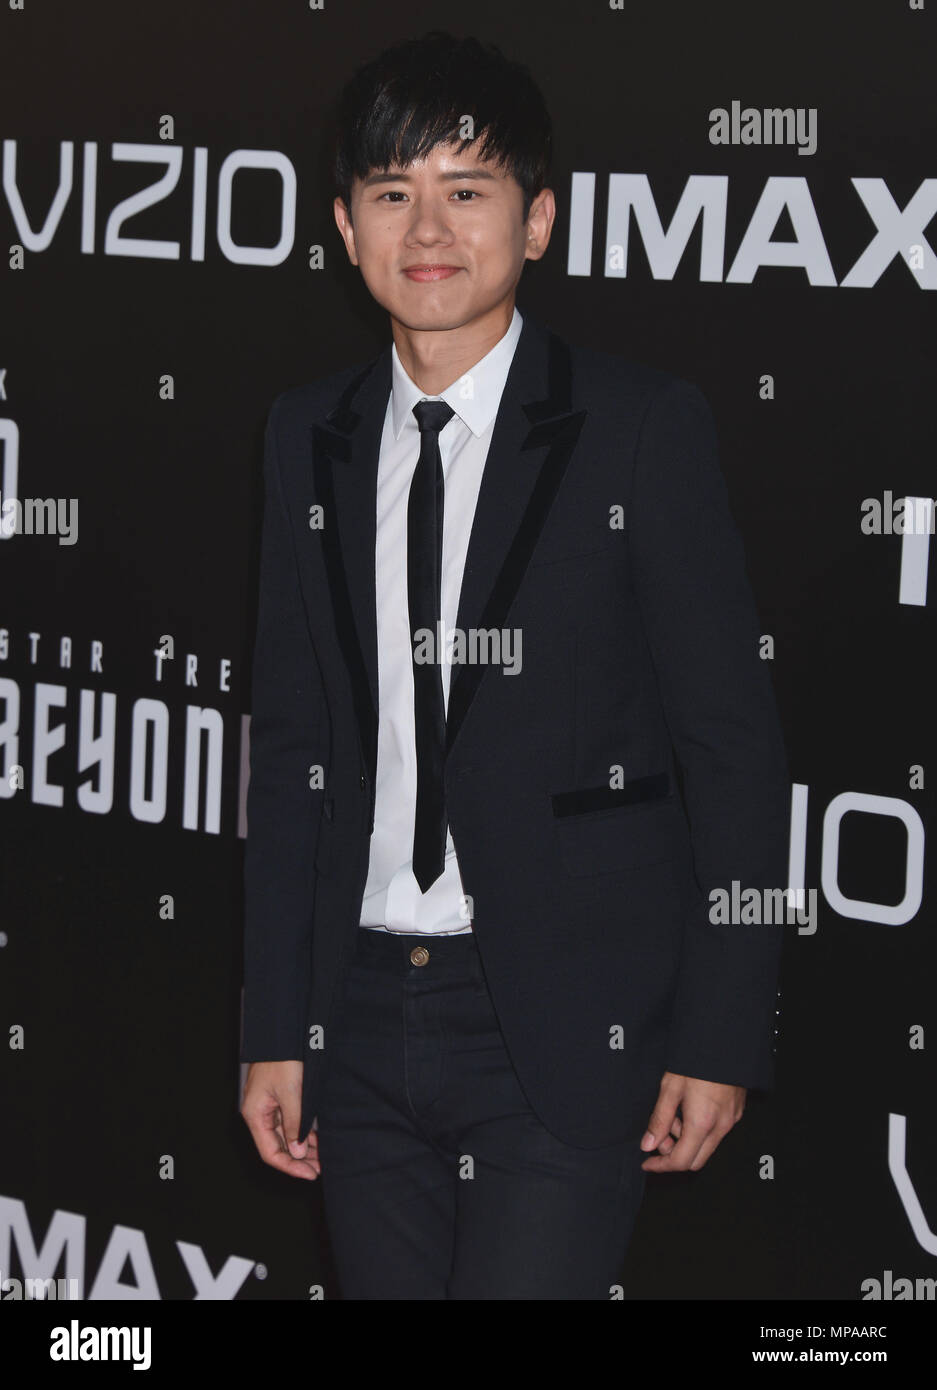 Jason Zhang     arriving at the Star Trek Beyond Premiere at the Embarcadero in San Diego ( Comicon Convention ), July 20, 2016.Jason Zhang    ------------- Red Carpet Event, Vertical, USA, Film Industry, Celebrities,  Photography, Bestof, Arts Culture and Entertainment, Topix Celebrities fashion /  Vertical, Best of, Event in Hollywood Life - California,  Red Carpet and backstage, USA, Film Industry, Celebrities,  movie celebrities, TV celebrities, Music celebrities, Photography, Bestof, Arts Culture and Entertainment,  Topix, Three Quarters, vertical, one person,, from the year , 2016, inqui Stock Photo